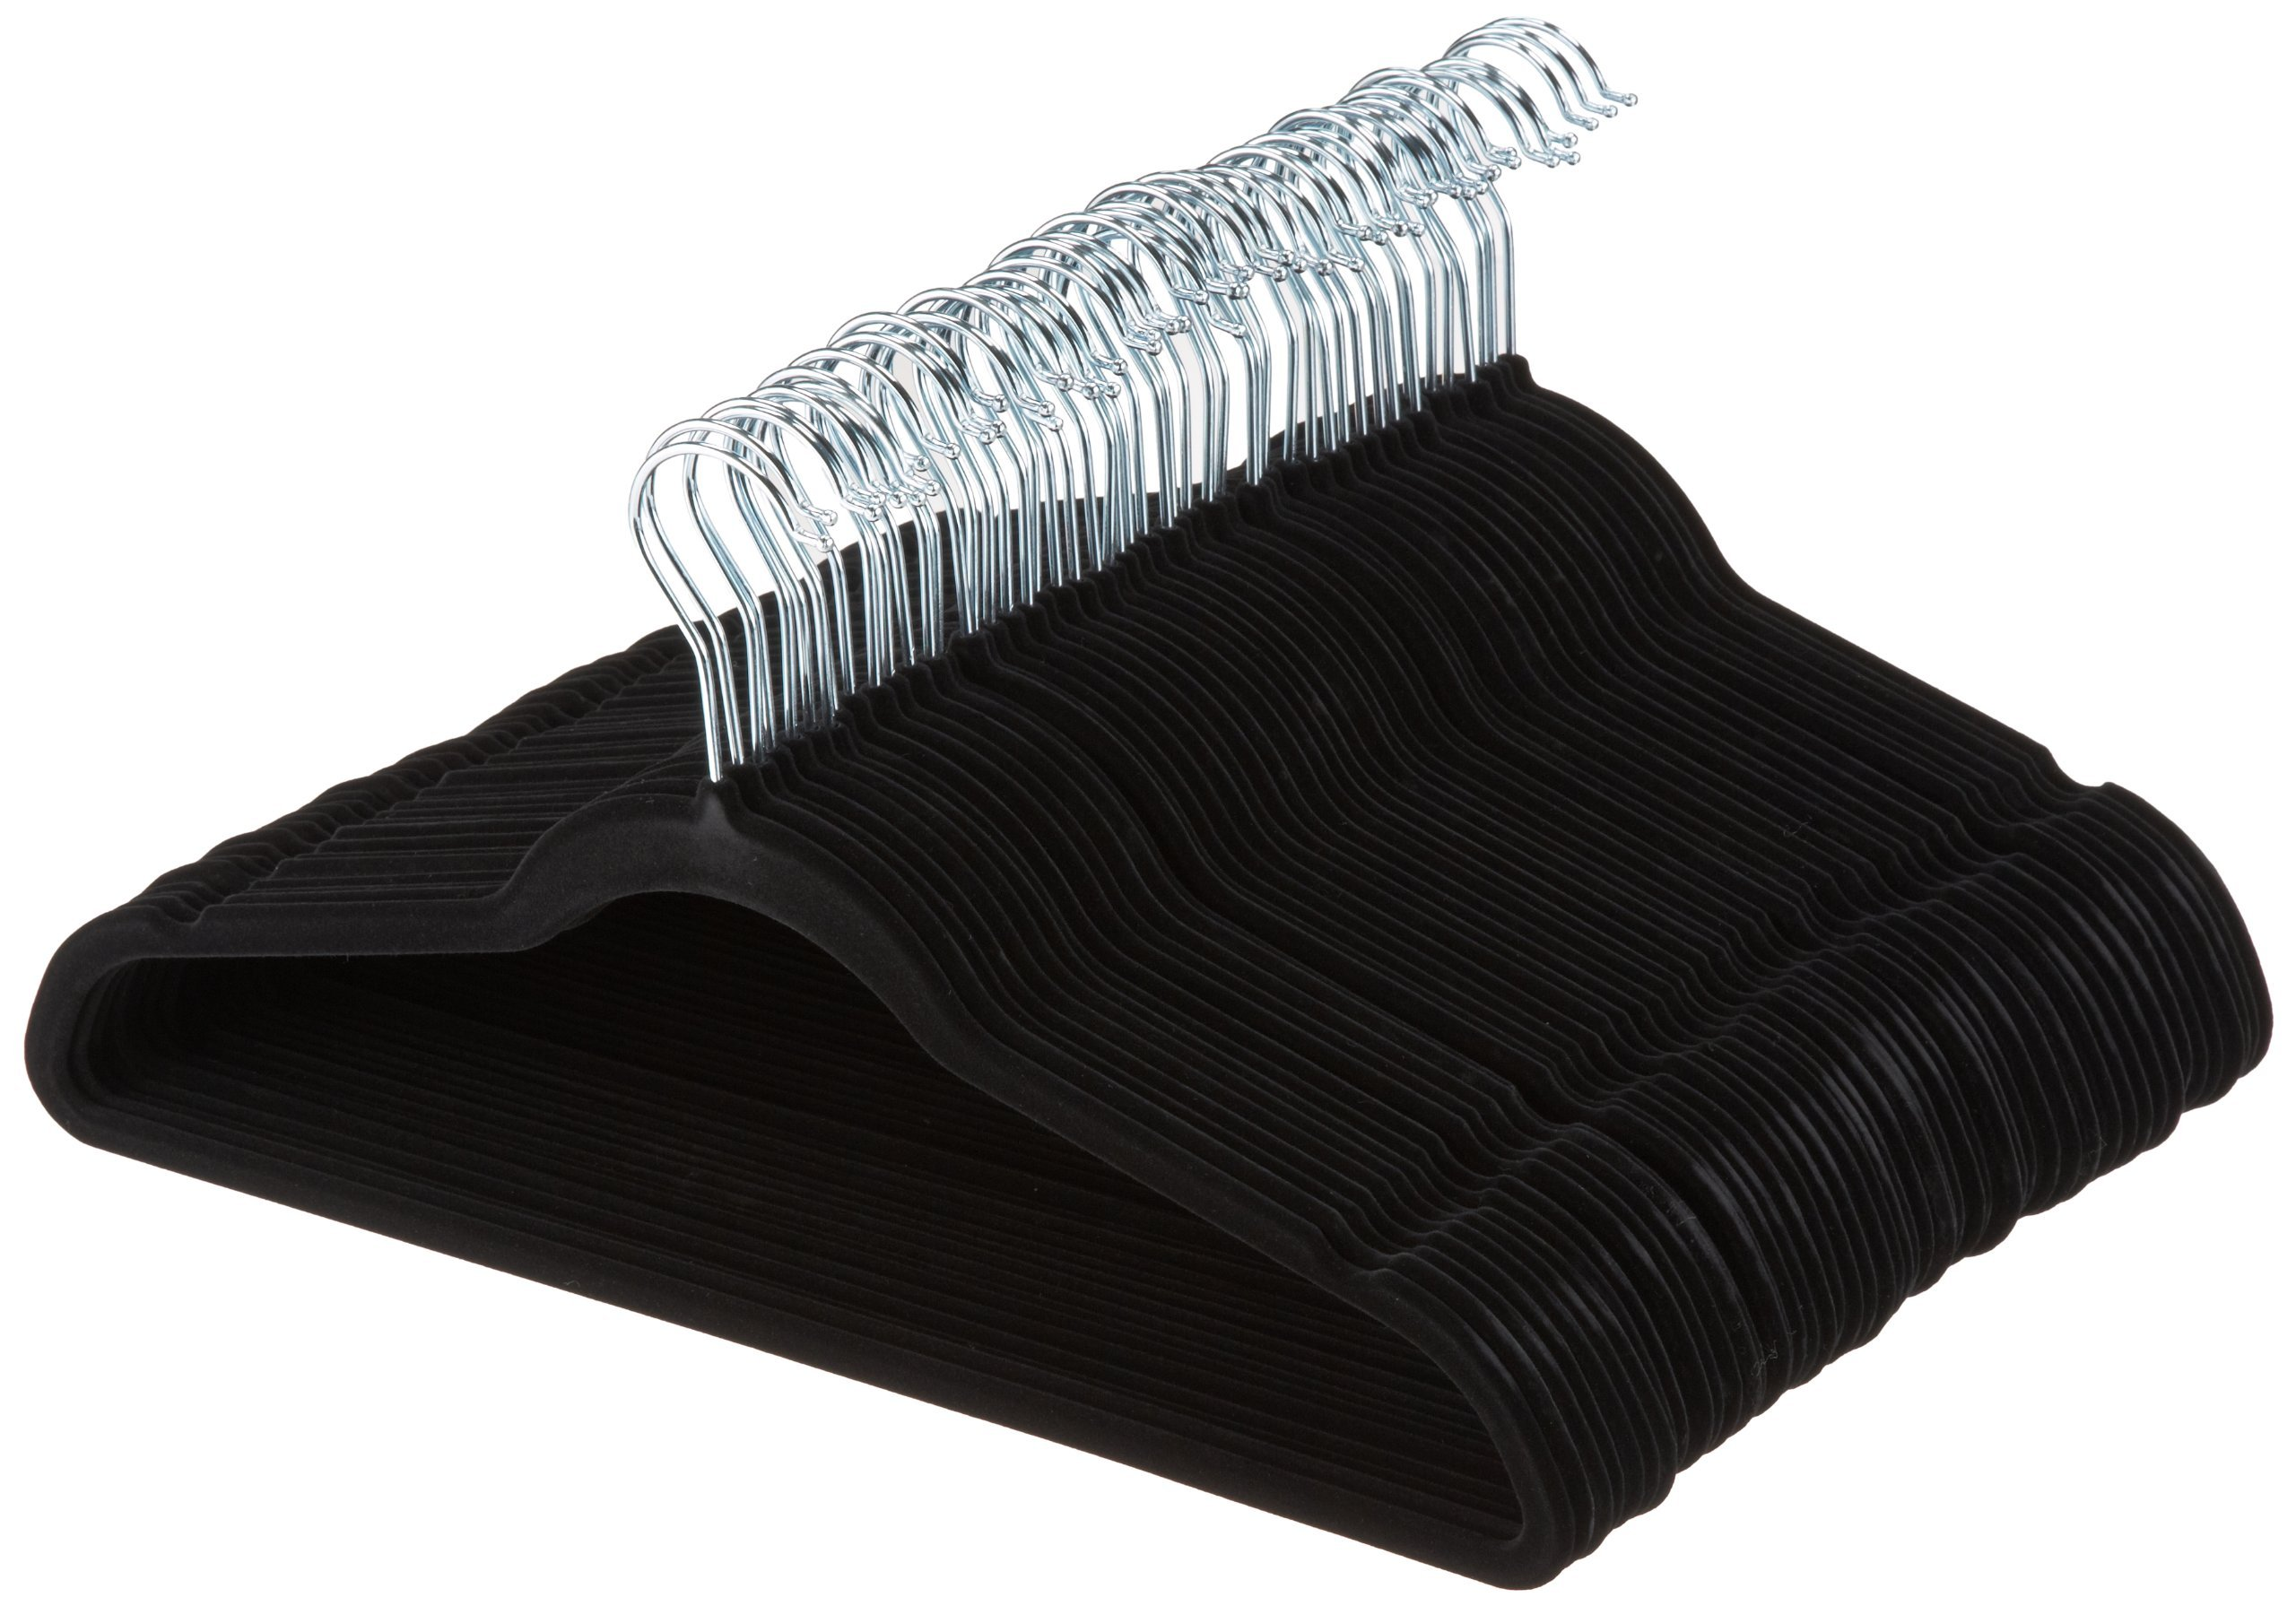 AmazonBasics Velvet Suit Clothes Hangers, 100-Pack, Black by AmazonBasics